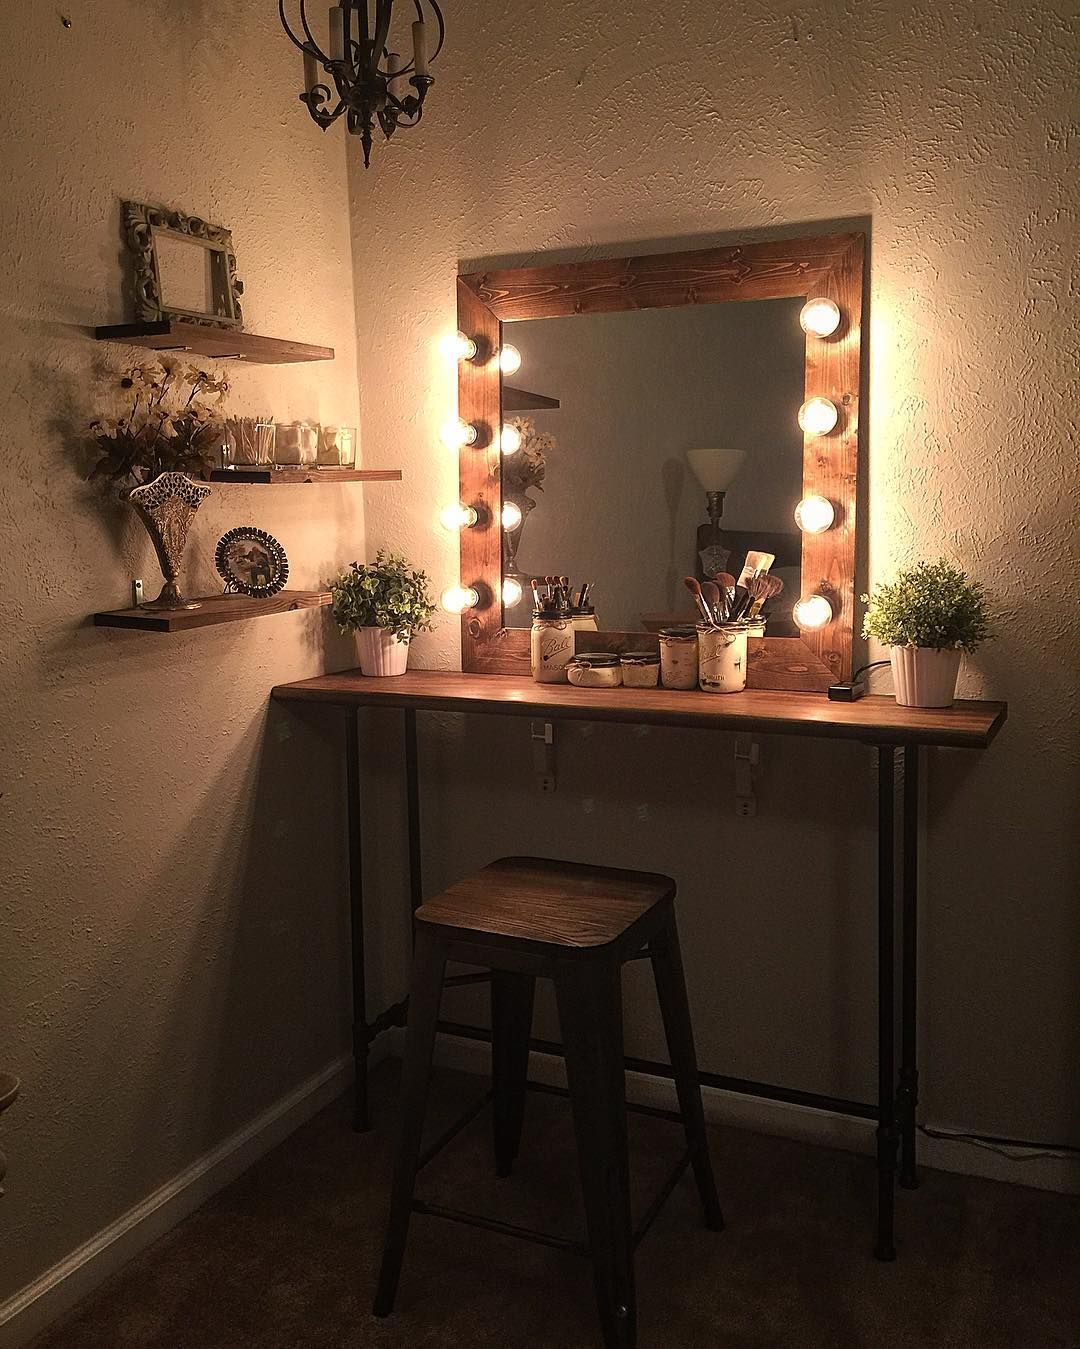 Cute easy simple diy wood rustic vanity mirror with for Diy wood vanity